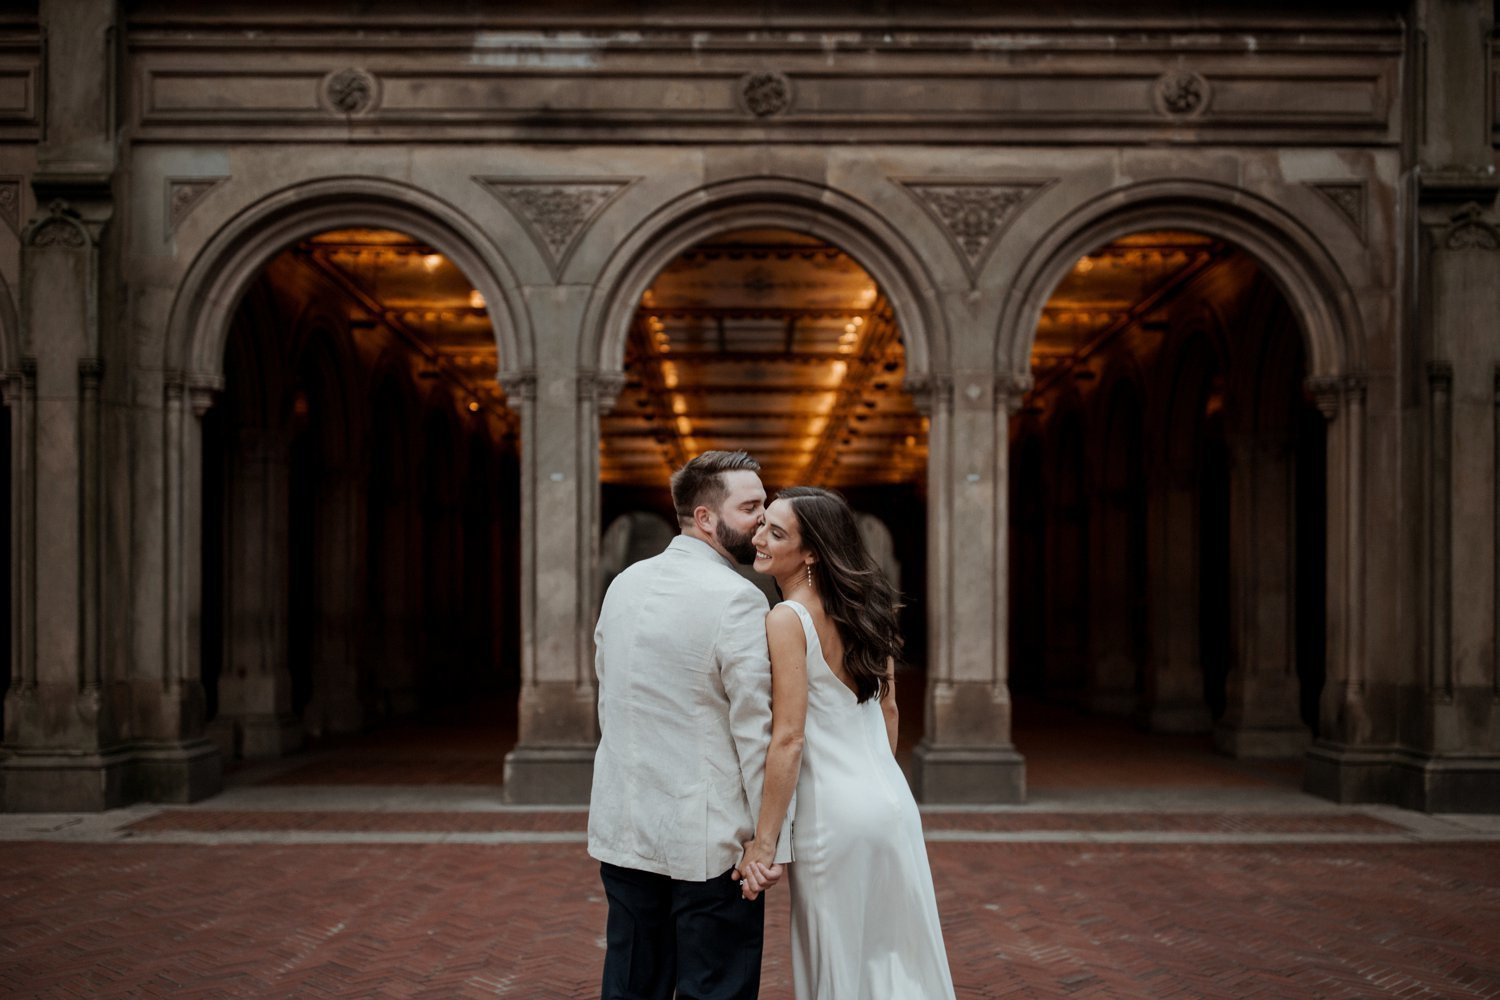 Kansas City Salt Lake City Destination Wedding Photographer_0165